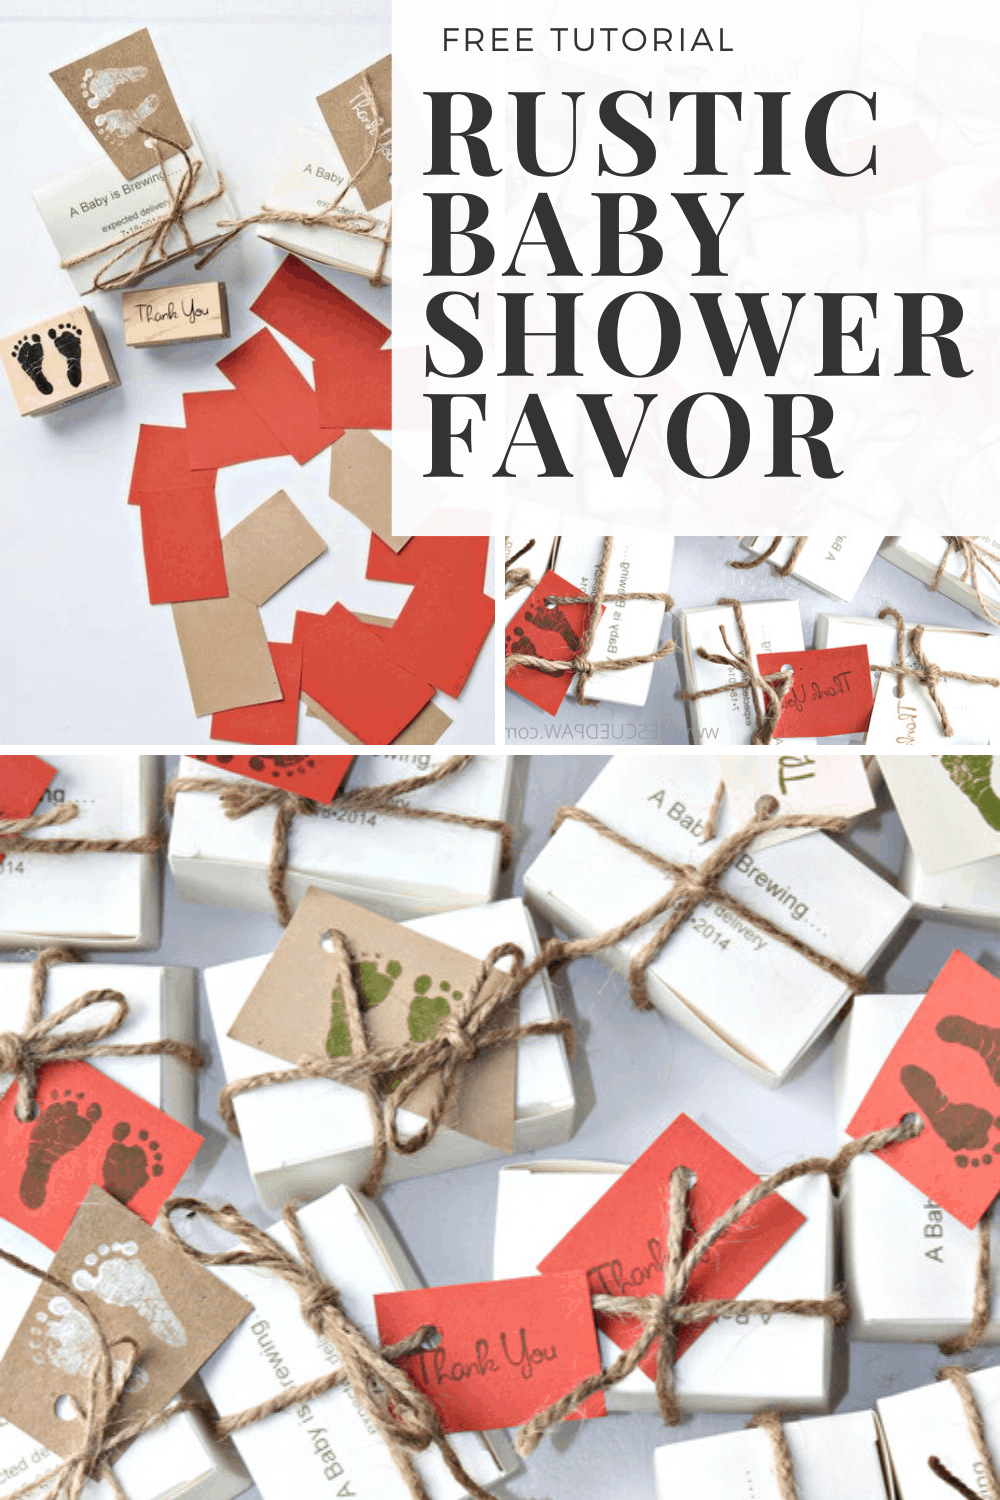 Rustic Baby Shower Favor Tutorial